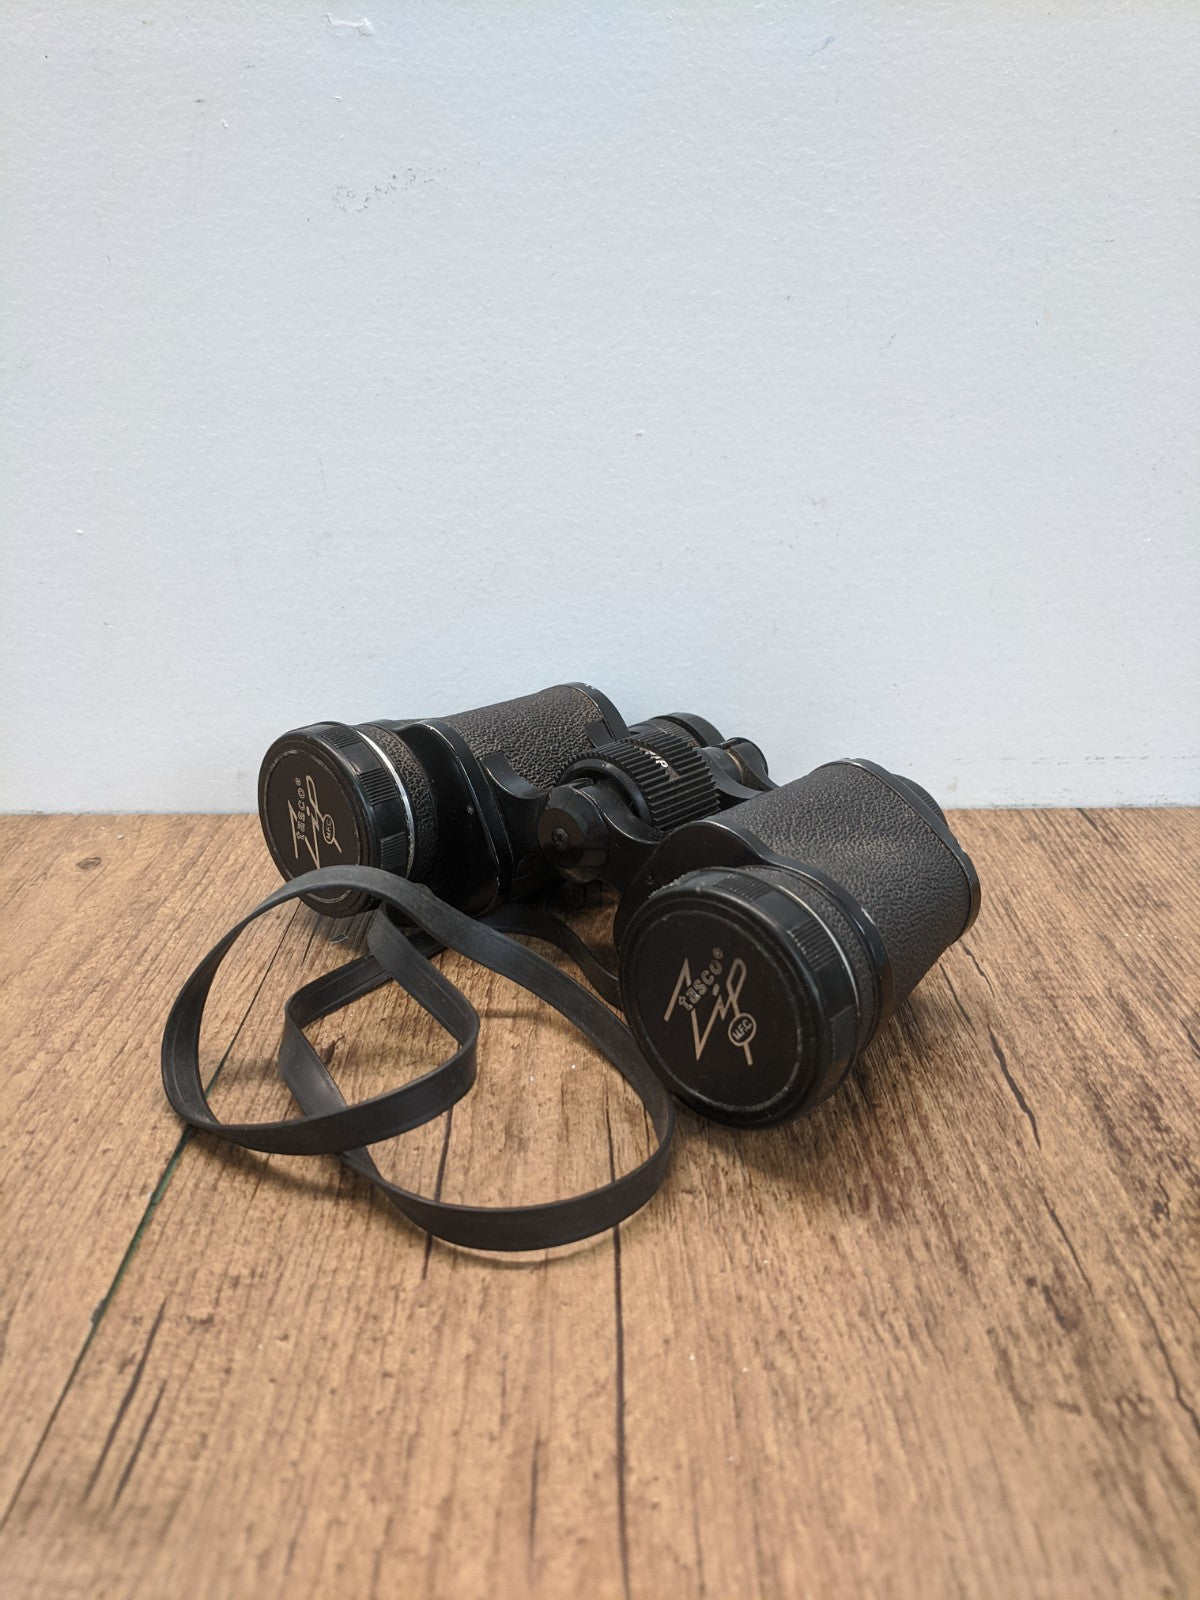 Tasco Zip 7X35 Wide Angle Binoculars